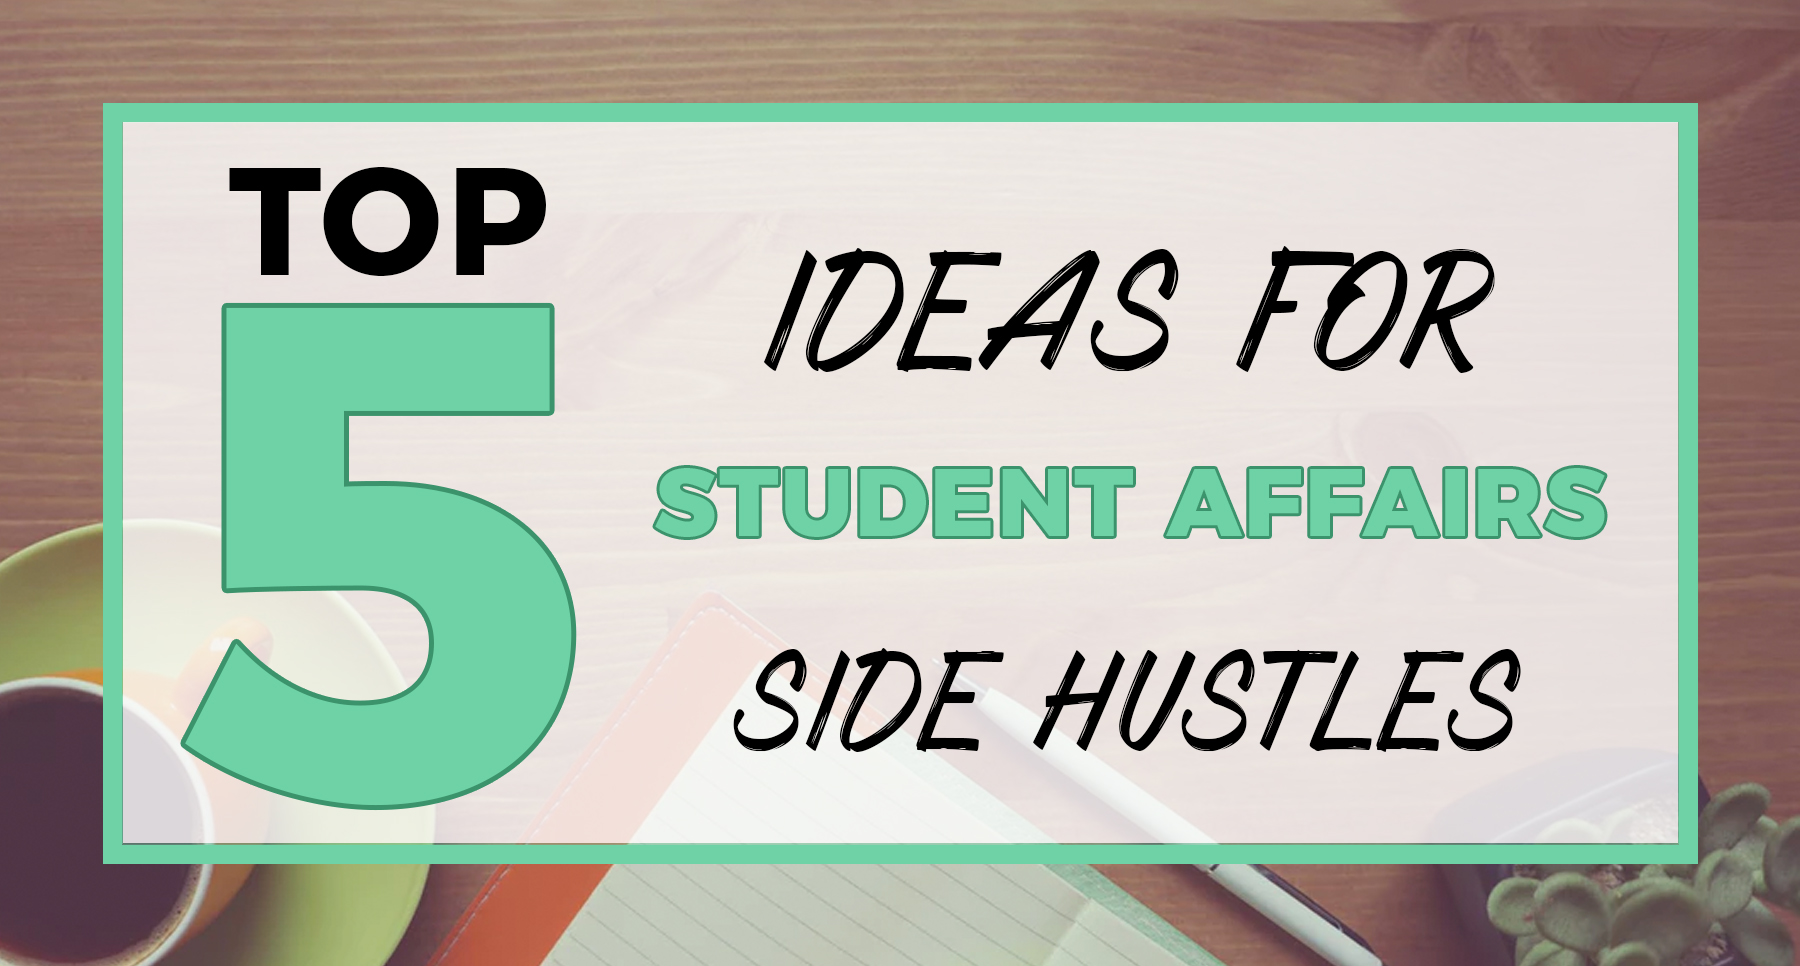 Top 5 Ideas for Student Affairs Side Hustles - Written by Brett Ellis on Medium.com